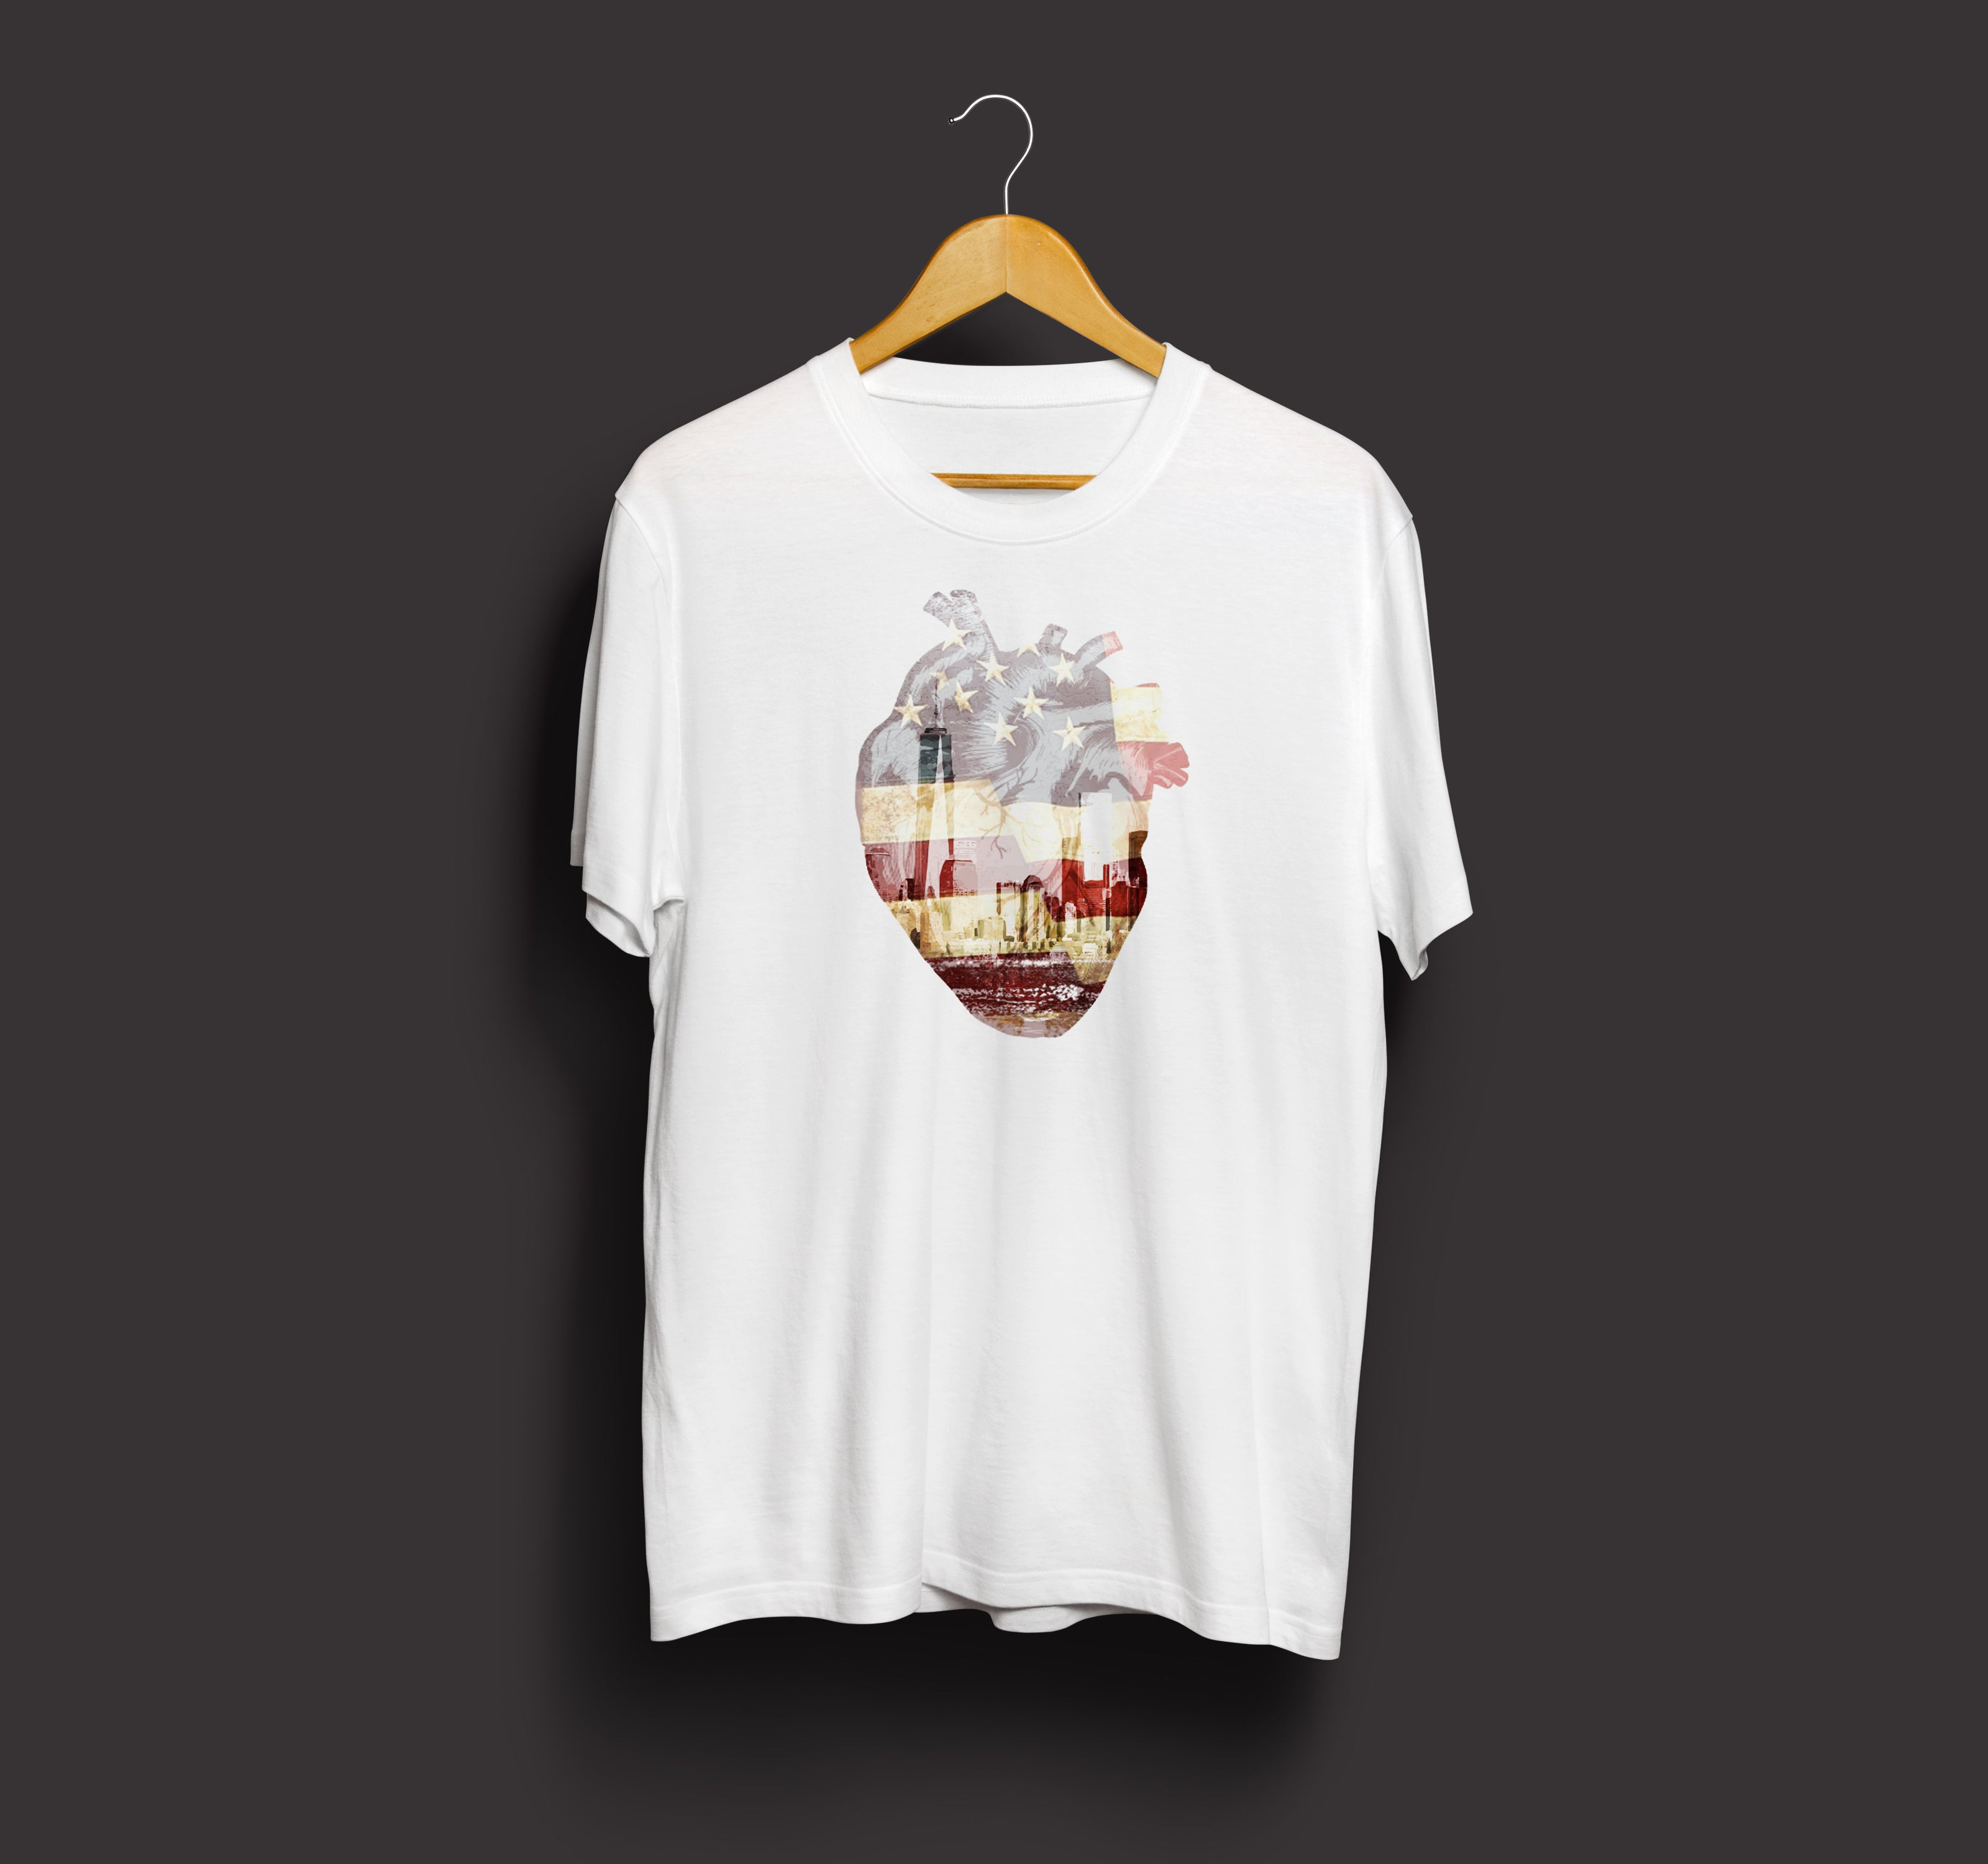 Heart of New York Cotton Crew Neck Vintage Tshirt (White)